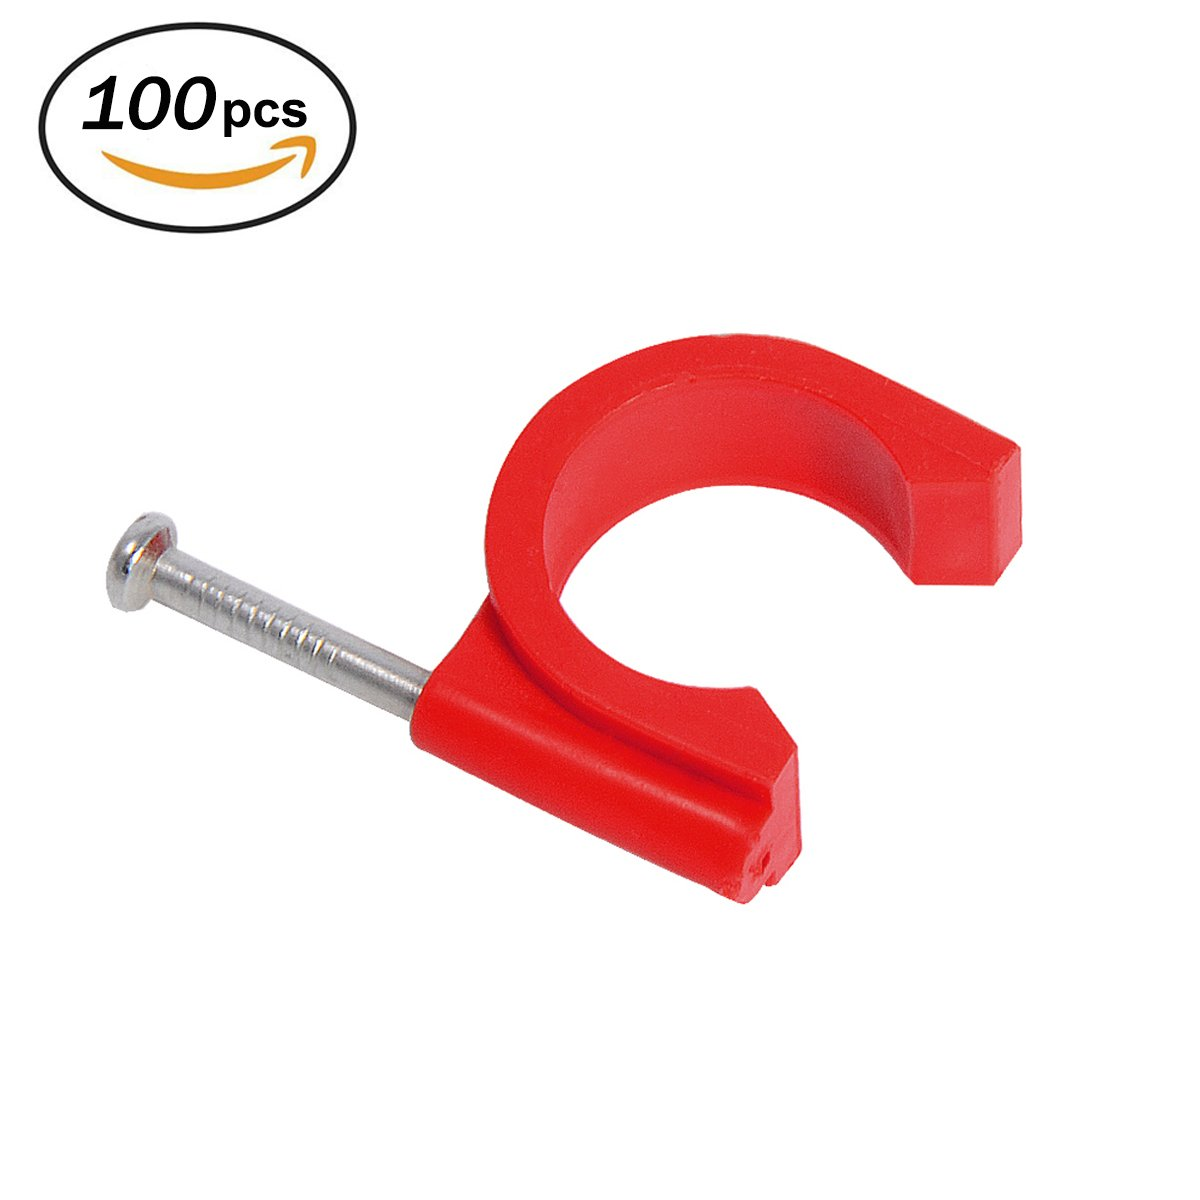 Firecore 3/4 Inch Tube Clamp with Nail Red for Wire Pipe, Cable, Water Pipe (100pcs)